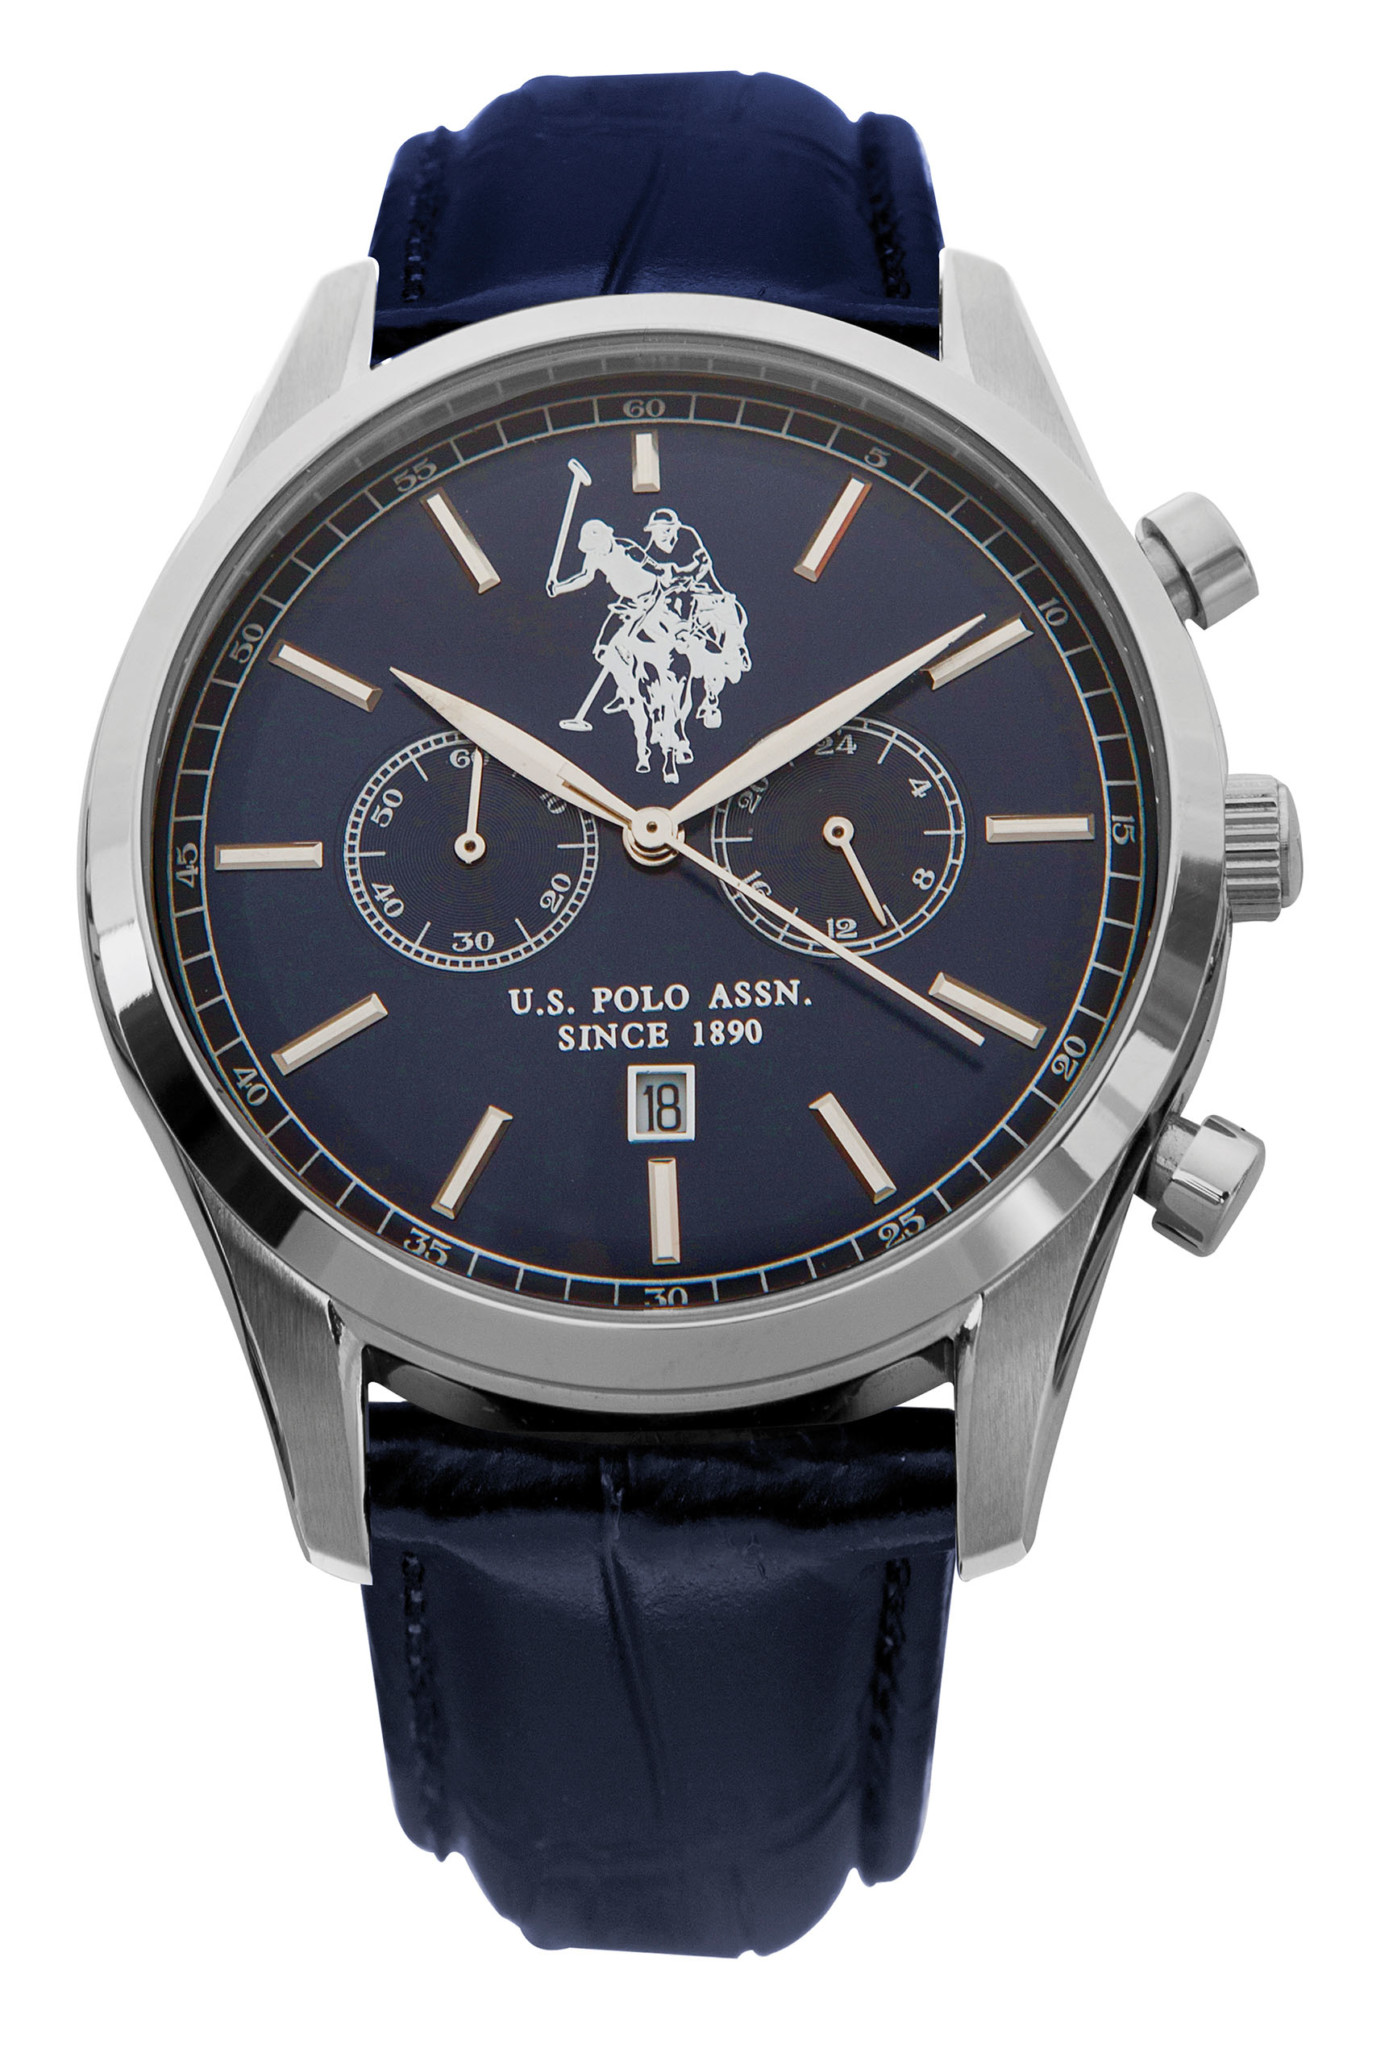 US Polo Assn Watch Brand Makes Its UK Debut At Jewellery Watch - Us assn polo map